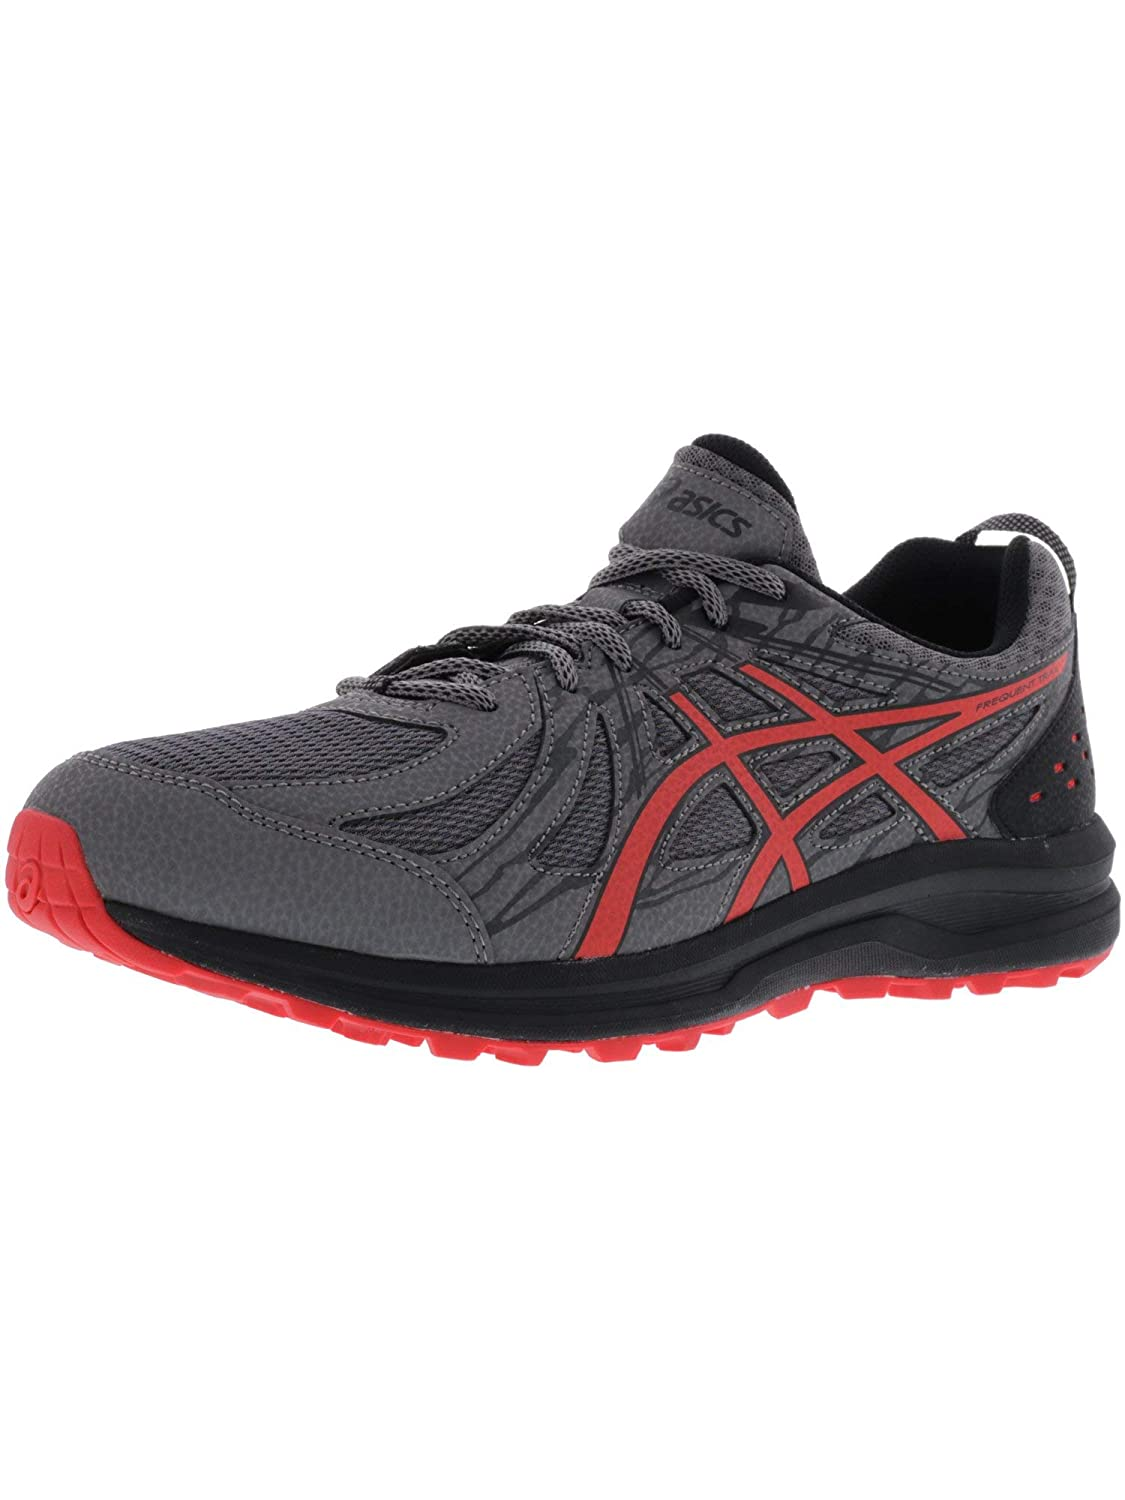 Asics Shoe Men's Frequent Trail Running Hsrtqd OTlkXwPZiu